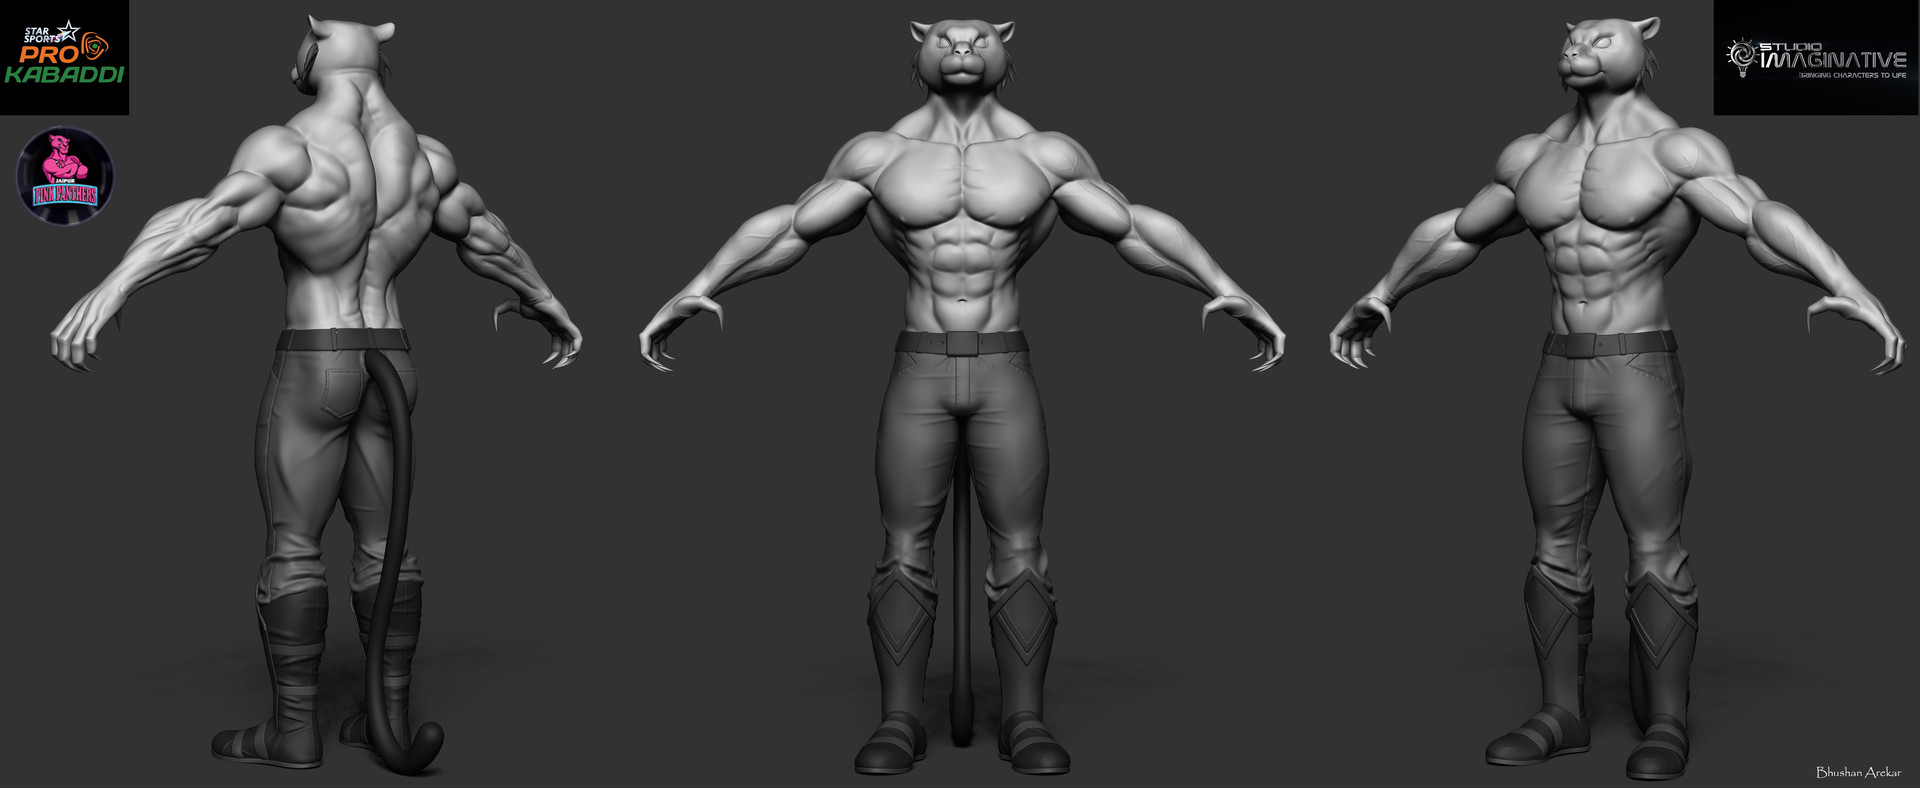 Base model provided,responsible for sculpting,UV/Bake